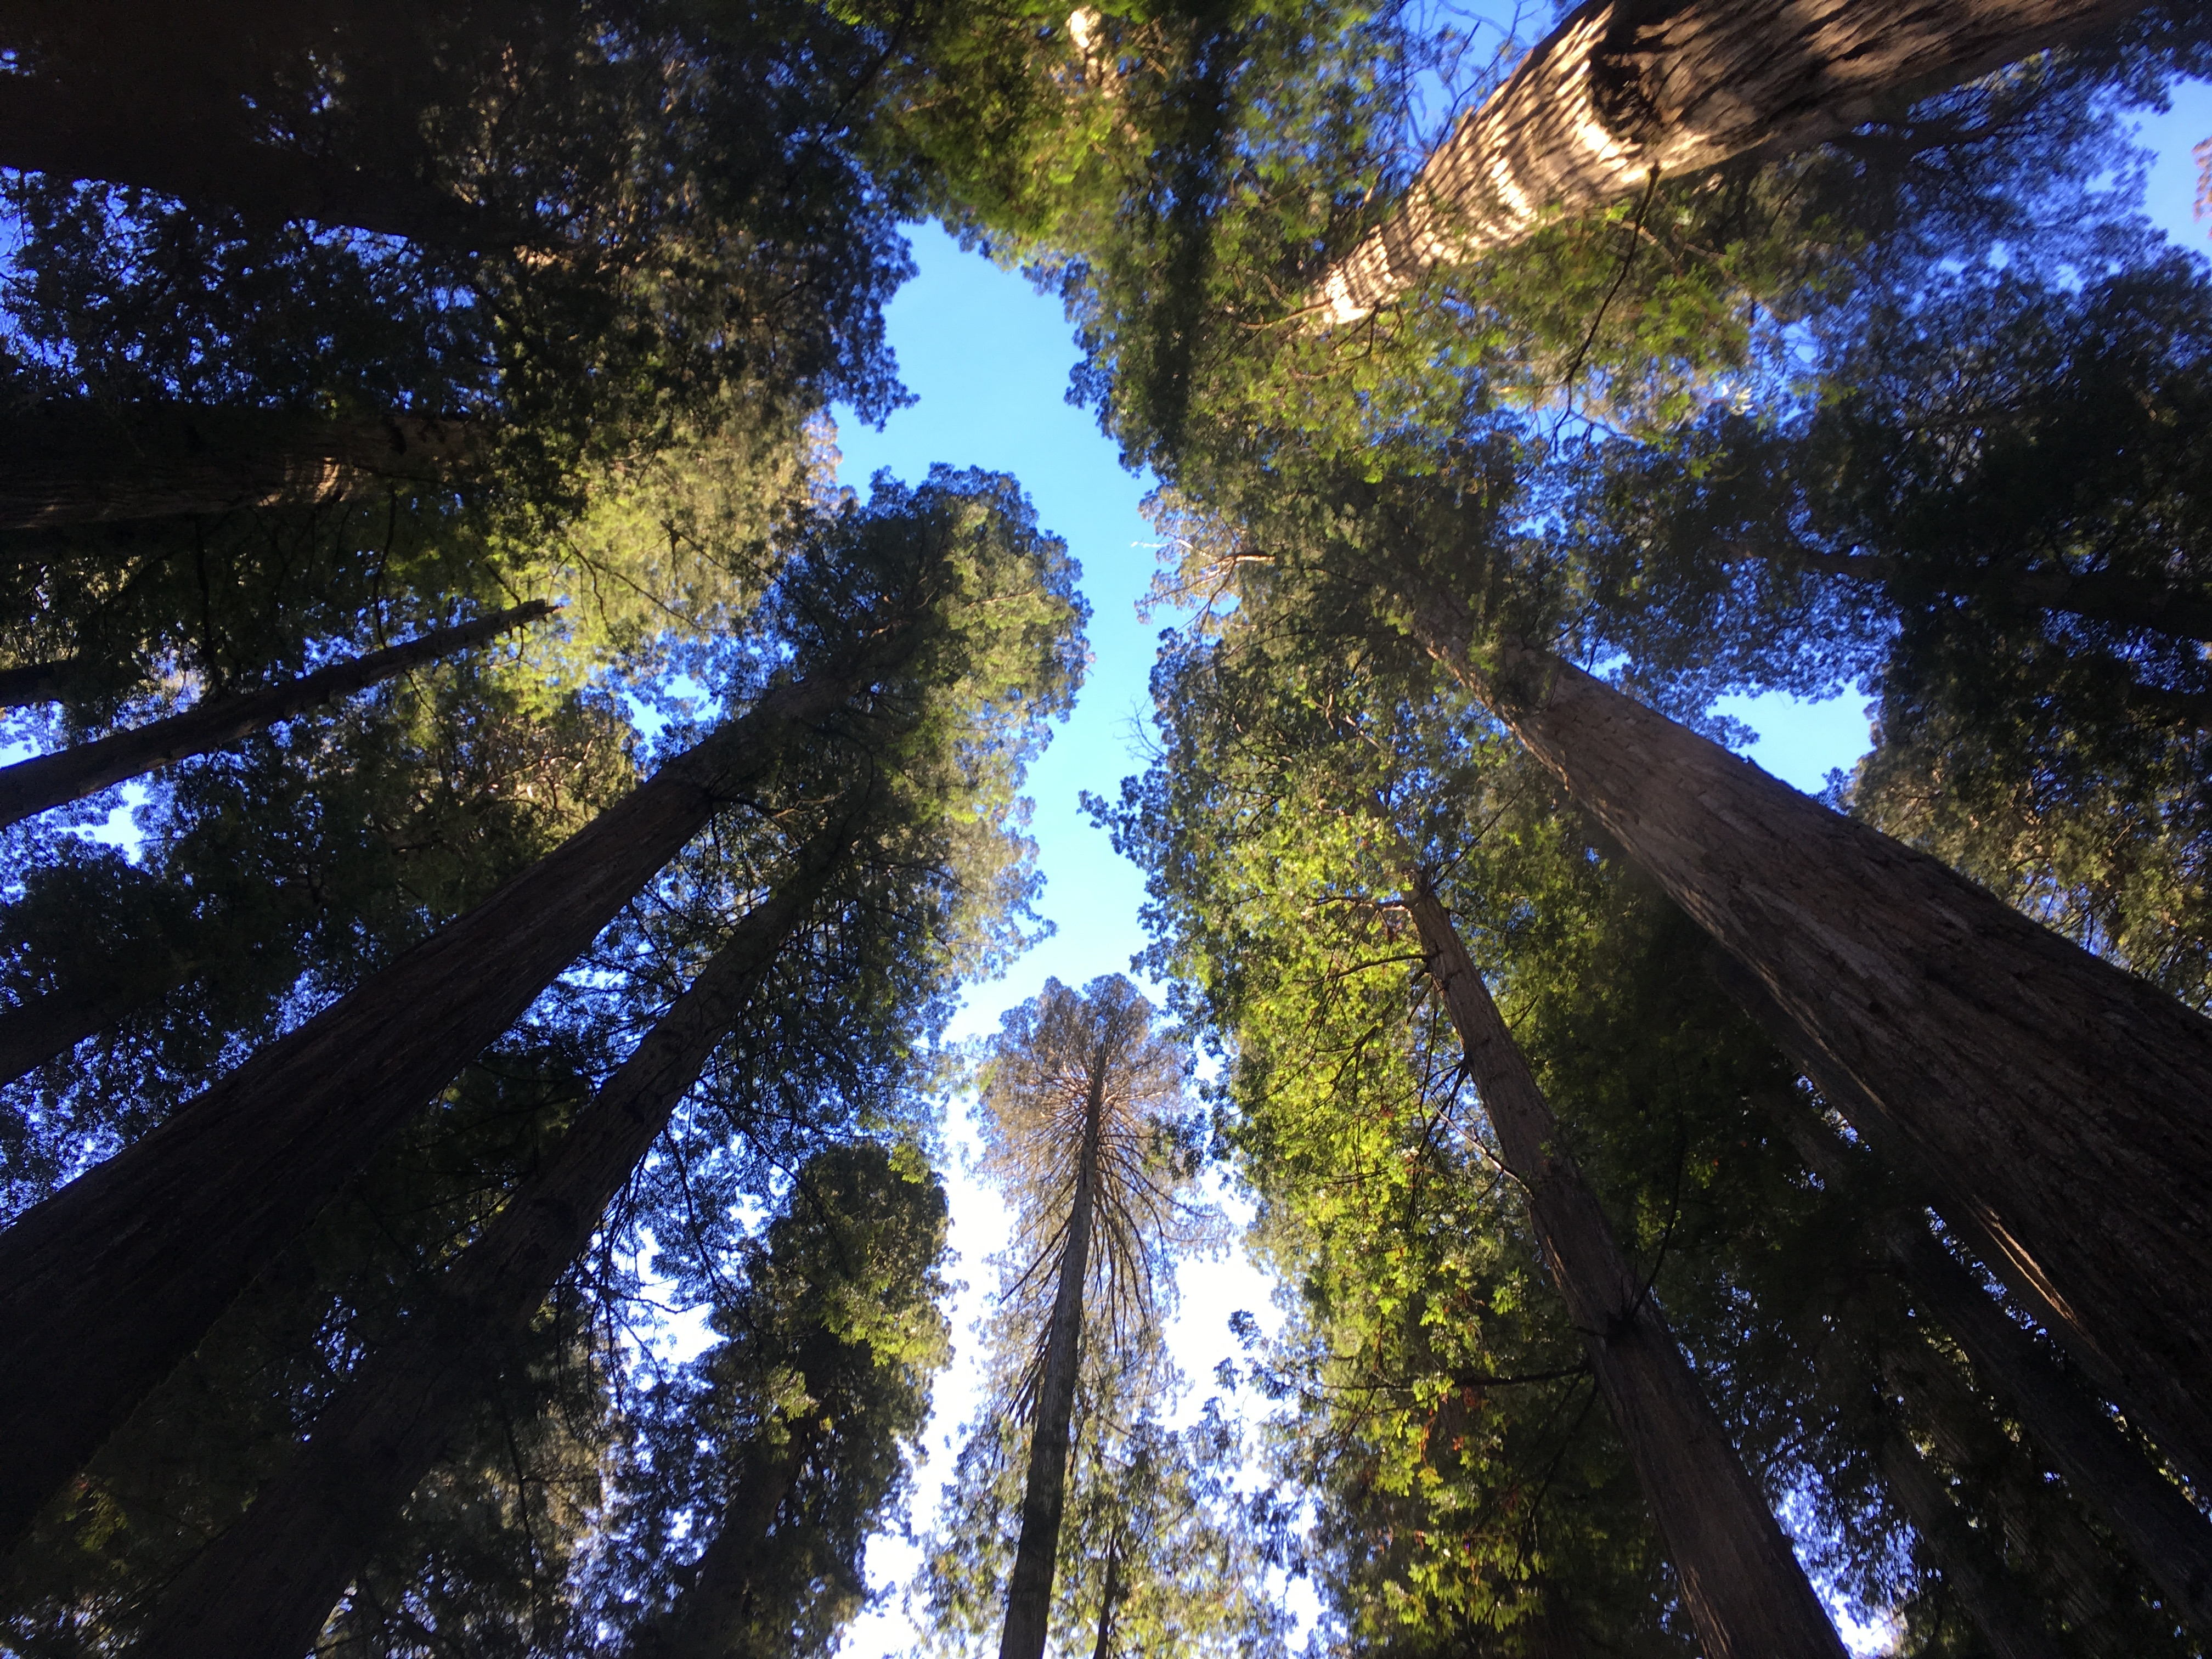 Above view from ground in redwood forest